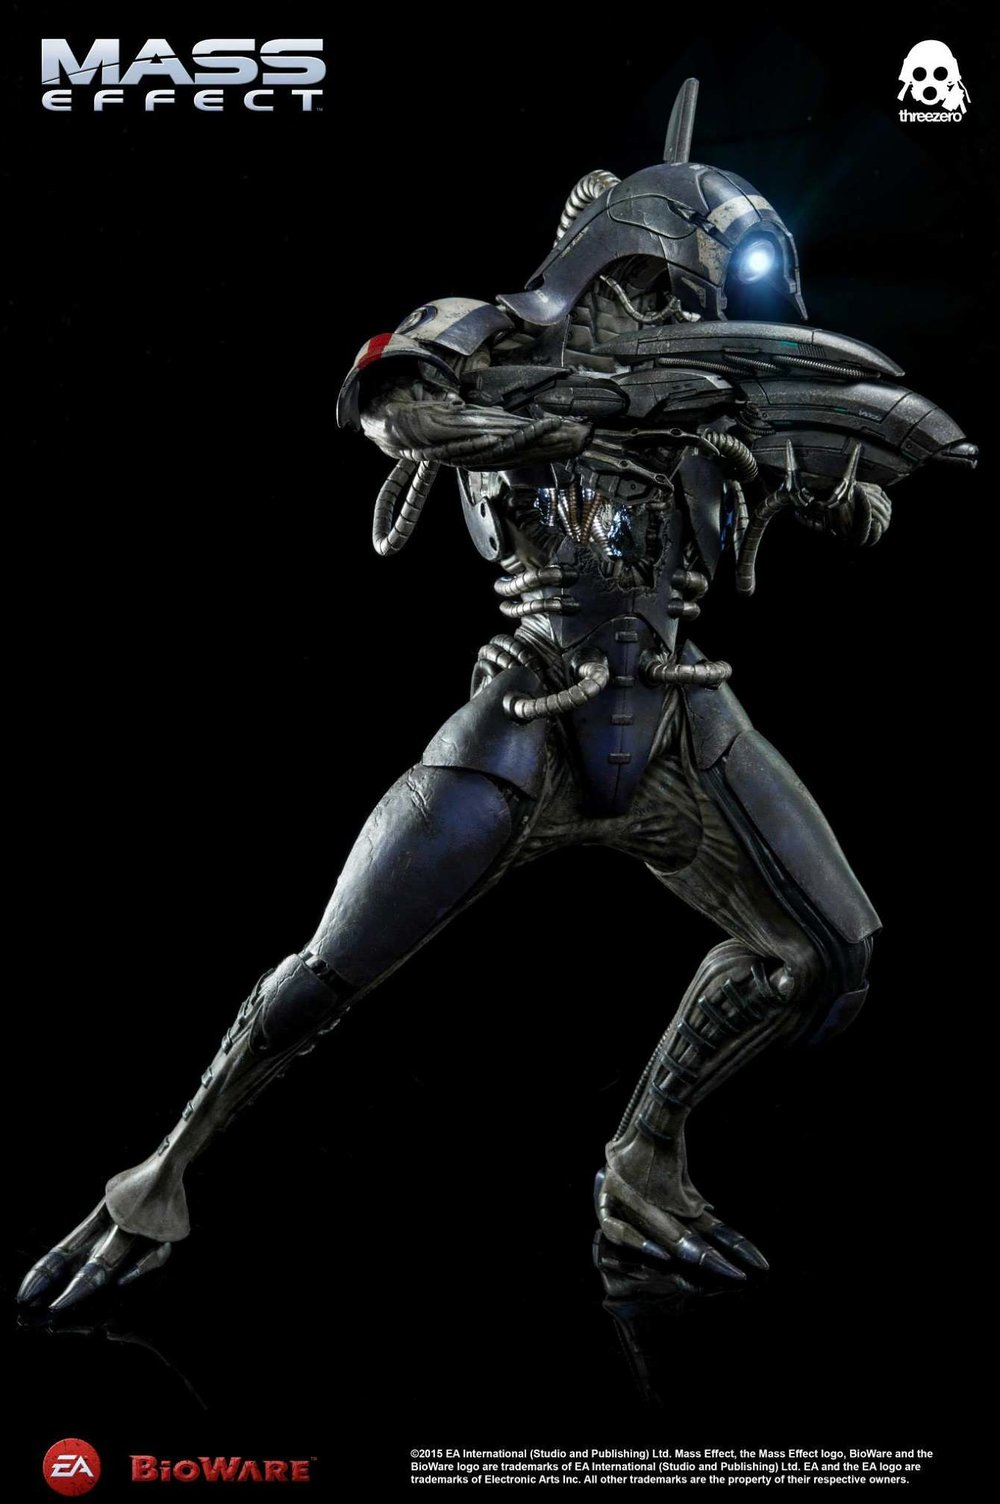 ThreeZero-Bioware-video-game-Legion-Mass-Effect-figure-5_1340_c.jpg